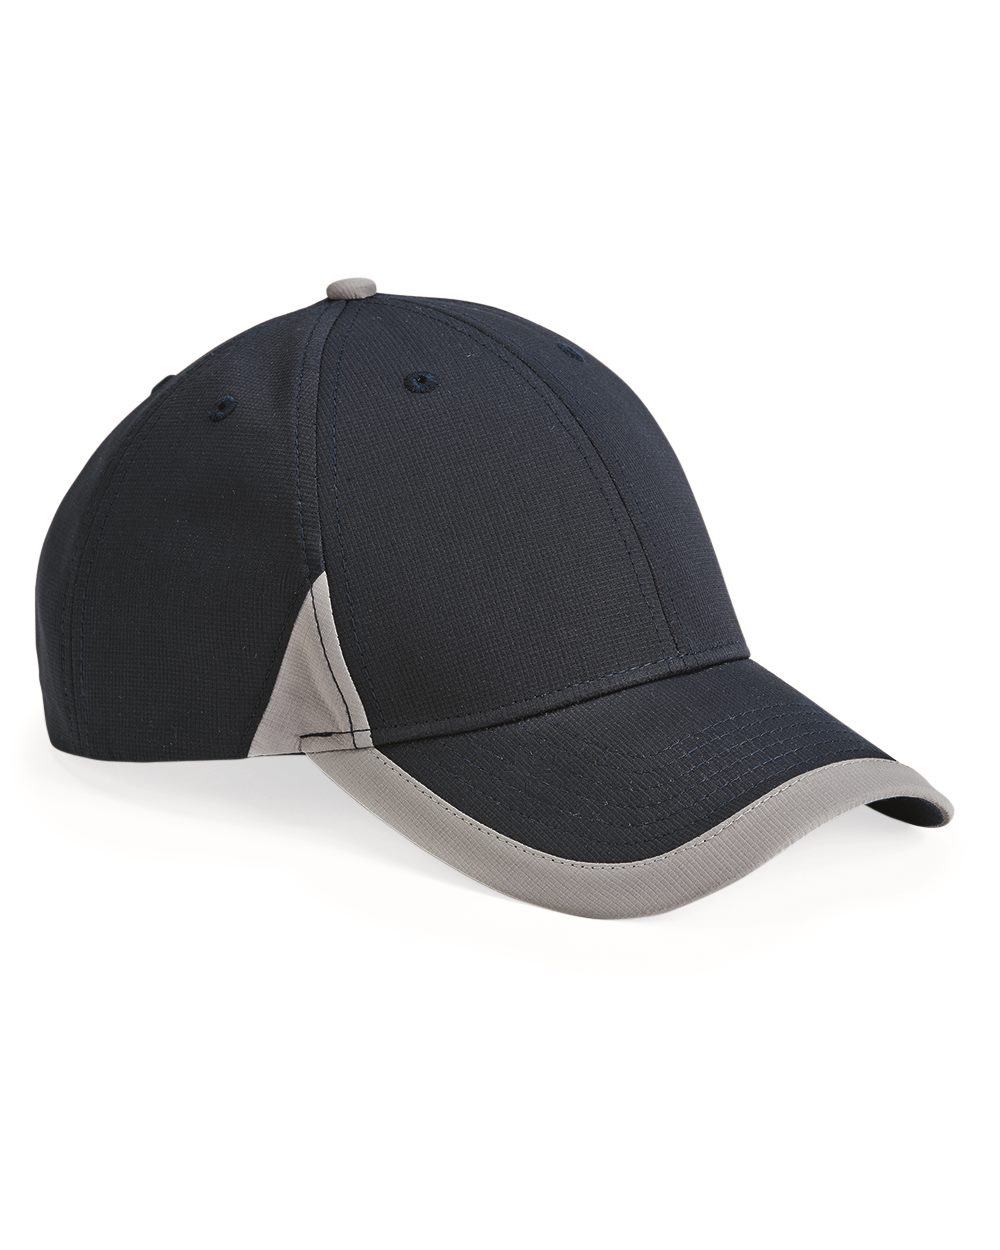 Team Sportsman AH90 - Performance Edge Cap